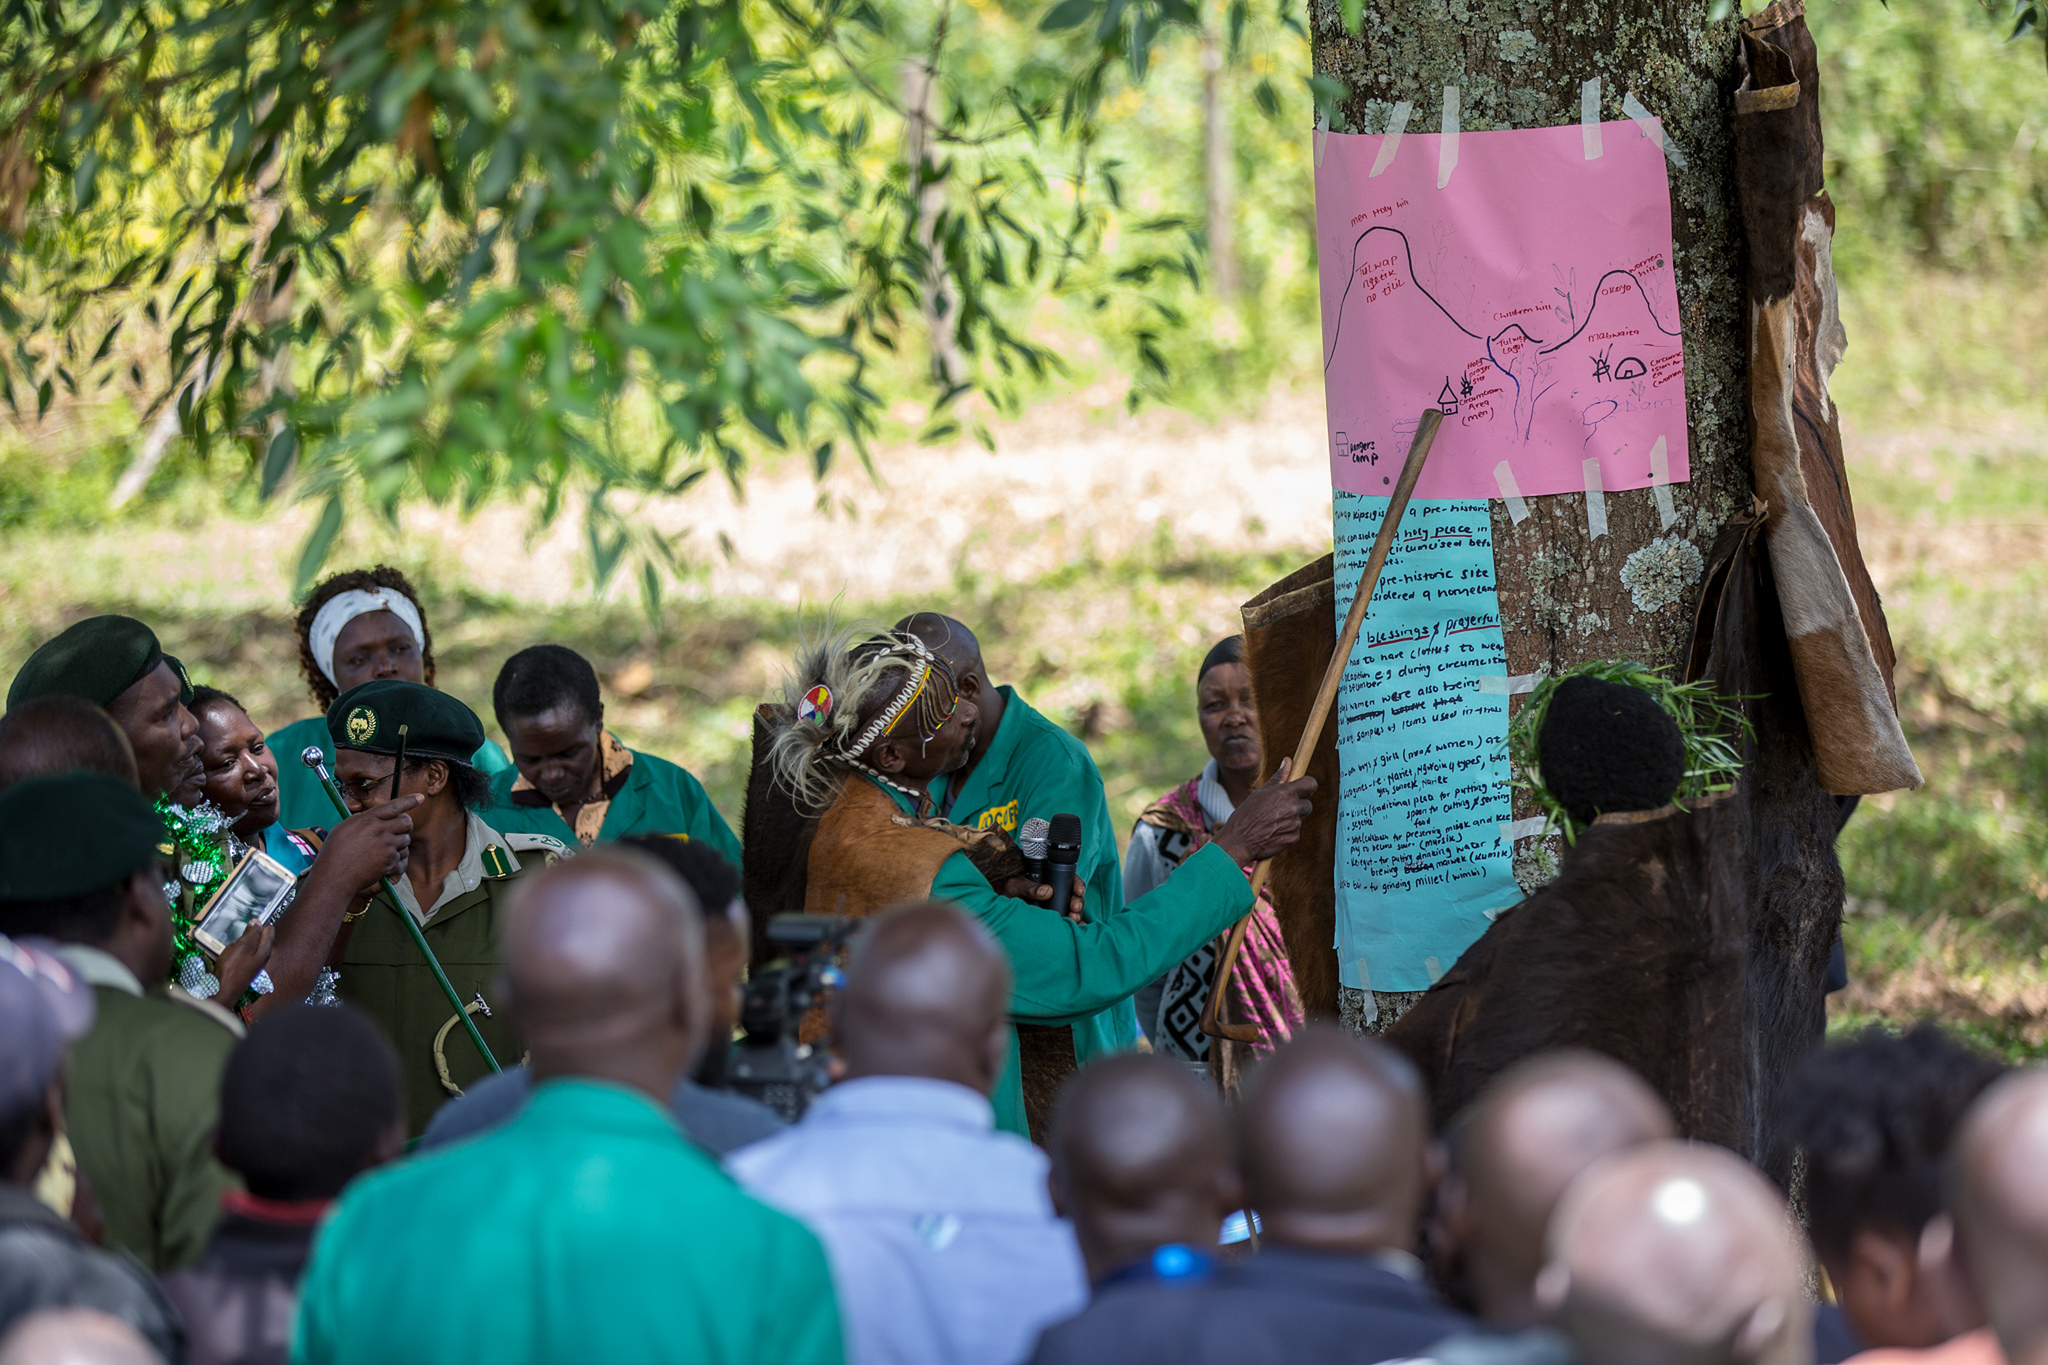 Community elder explaining the map of sacred hills in Londiani in Kenya's Rift Valley, on a tree to the community